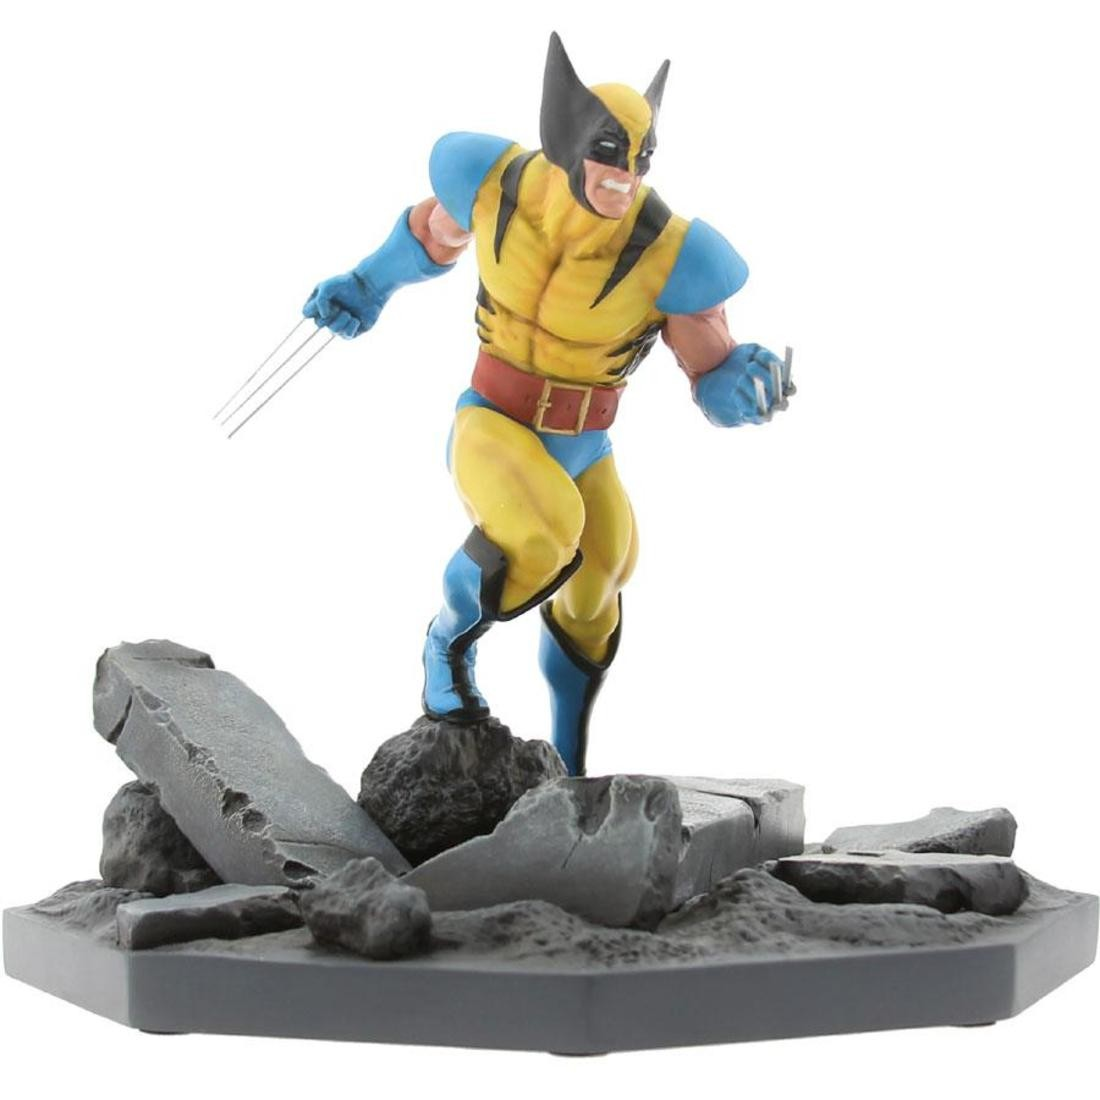 BAIT x Marvel Wolverine Statue By MINDstyle (yellow) only 500 made bust avenger